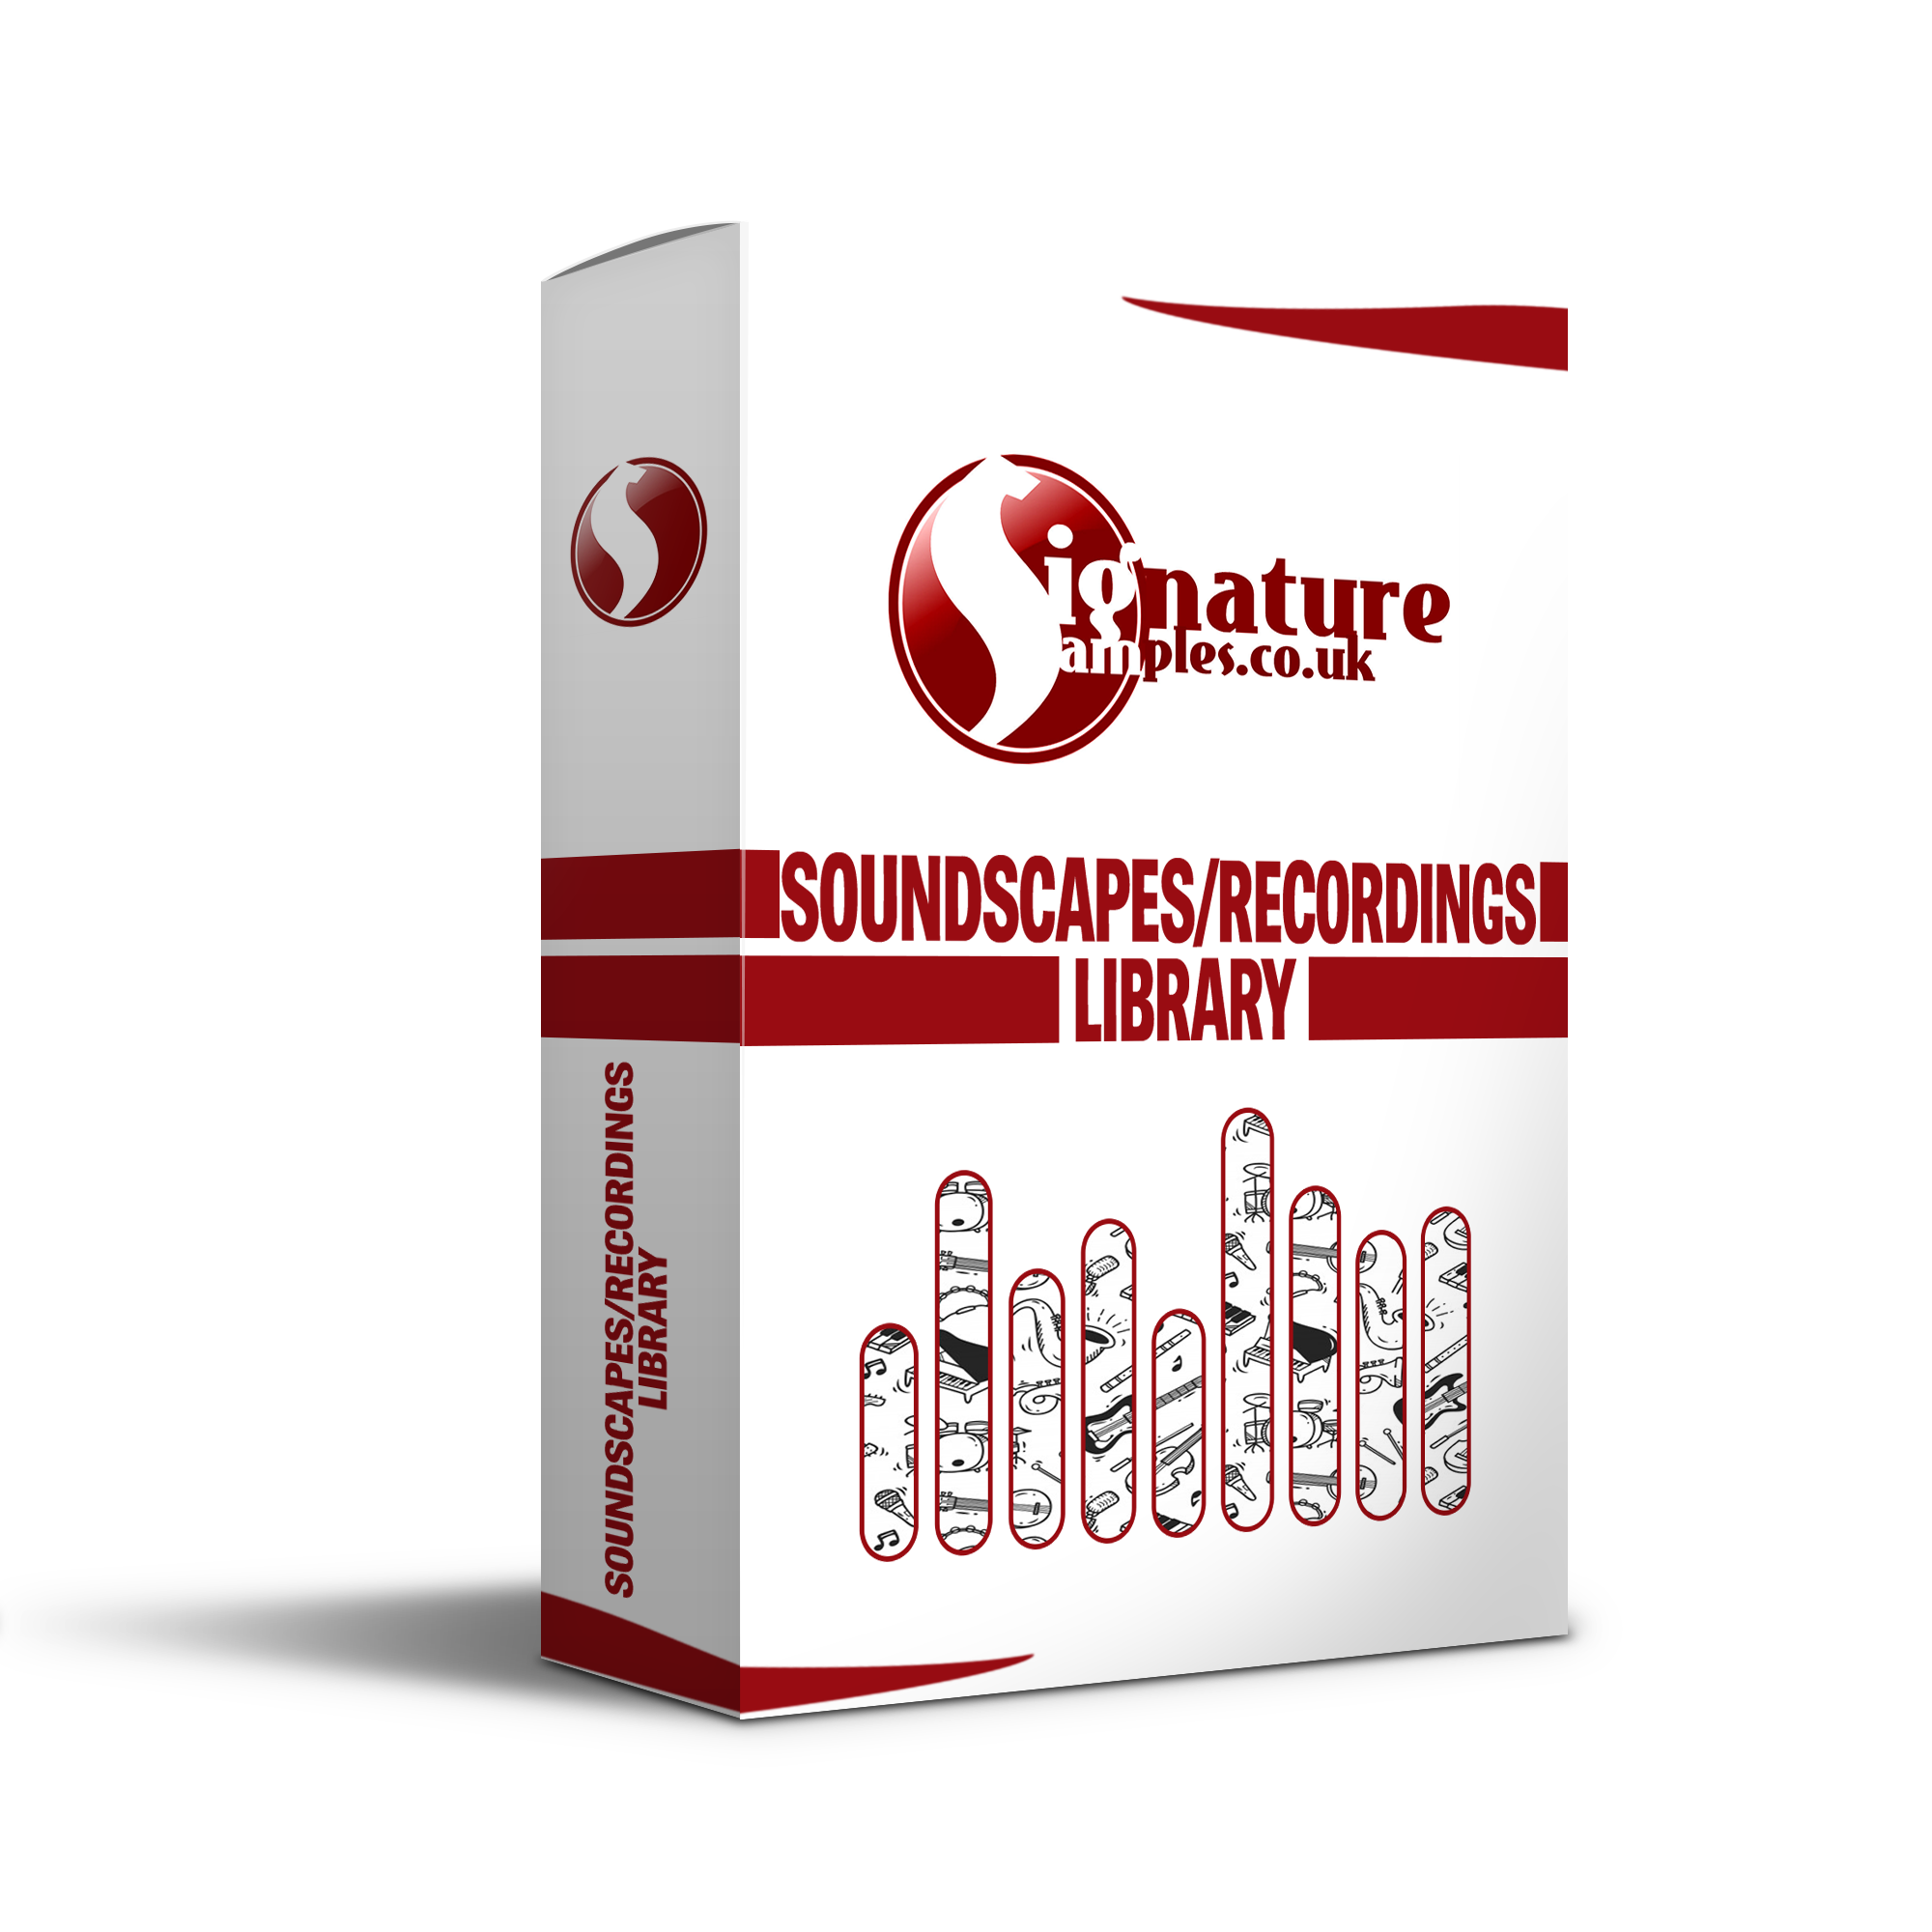 Soundscapes/Recordings Library - £2.99 - In this pack you will find over 100 high quality sound recordings totalling hours and hours of sounds and atmospheres. Great sound FX can be made from these recordings and they will work amazing for soundscapes in video games and background noise in post production for tv/film.